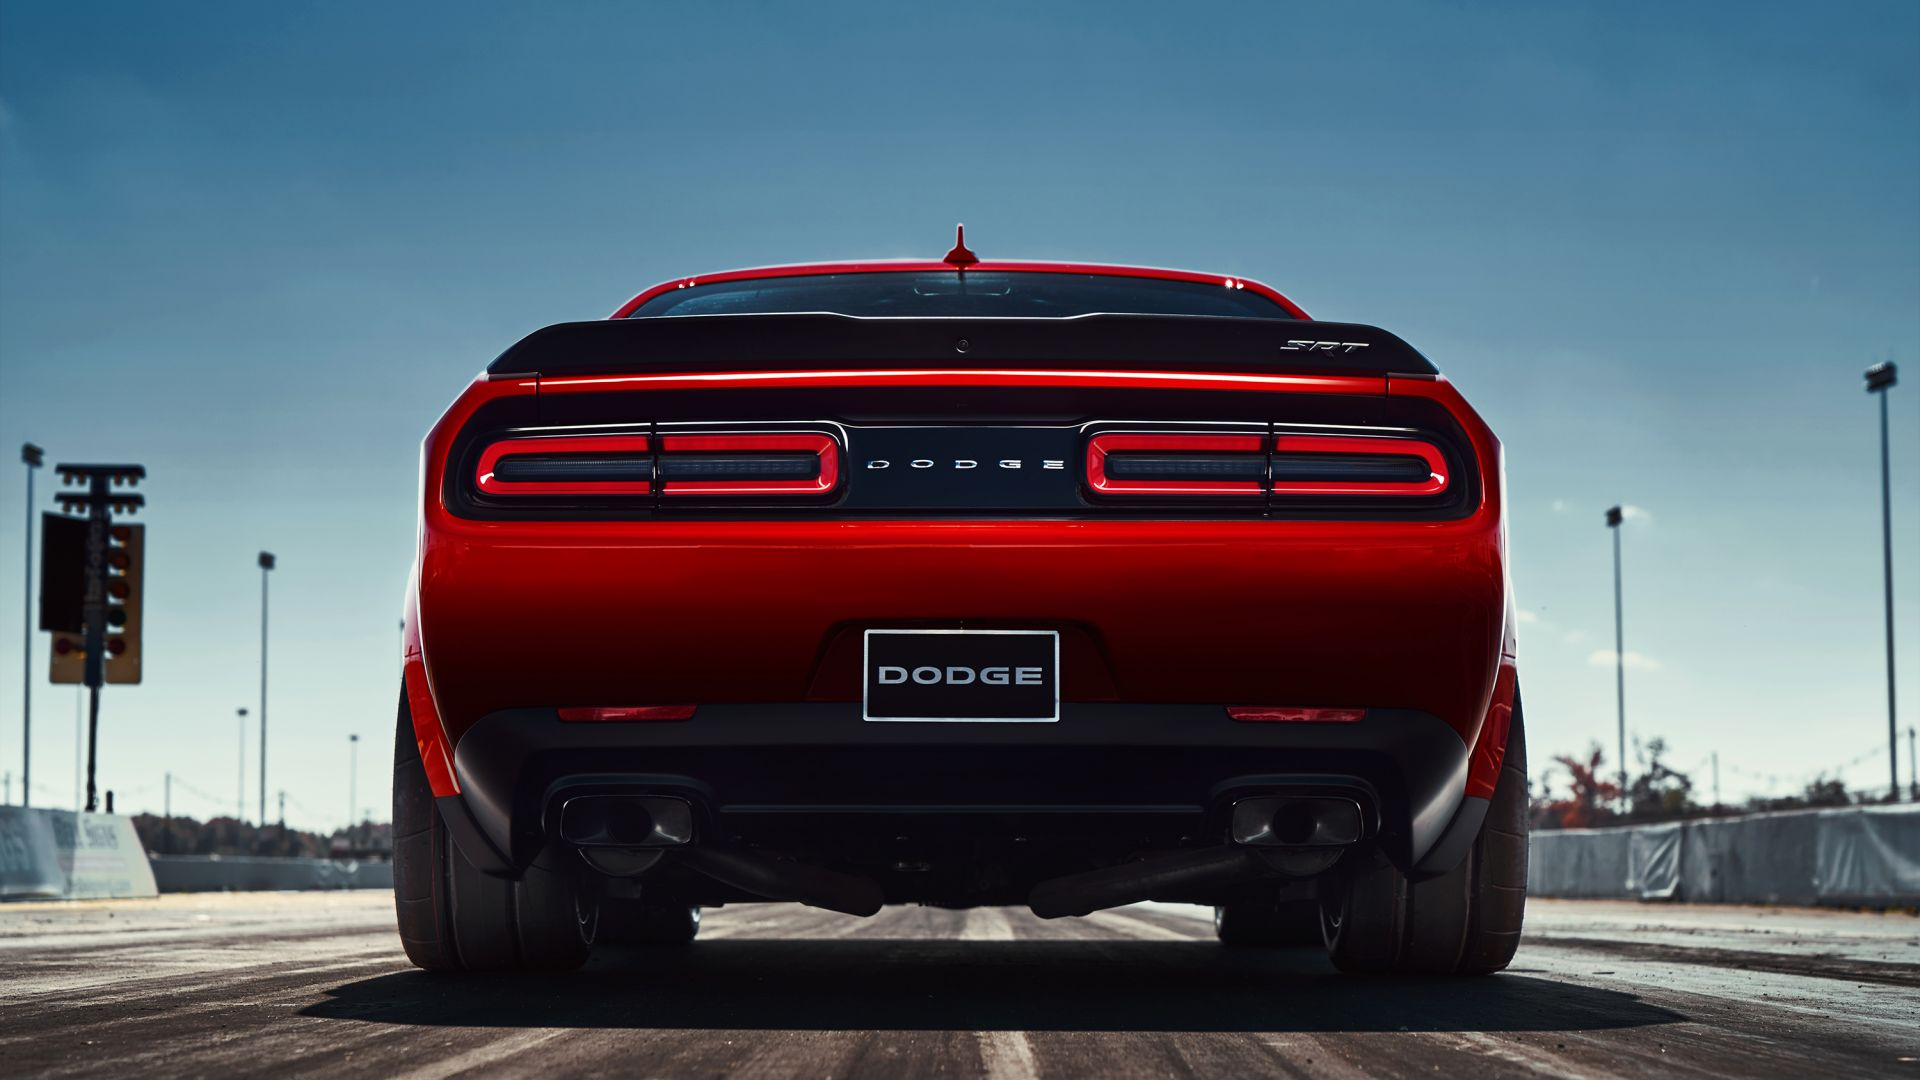 Dodge Challenger SRT Demon, красный, 2017 Нью-Йоркский Автосалон, Dodge Challenger SRT Demon, red, 2017 New York Auto Show